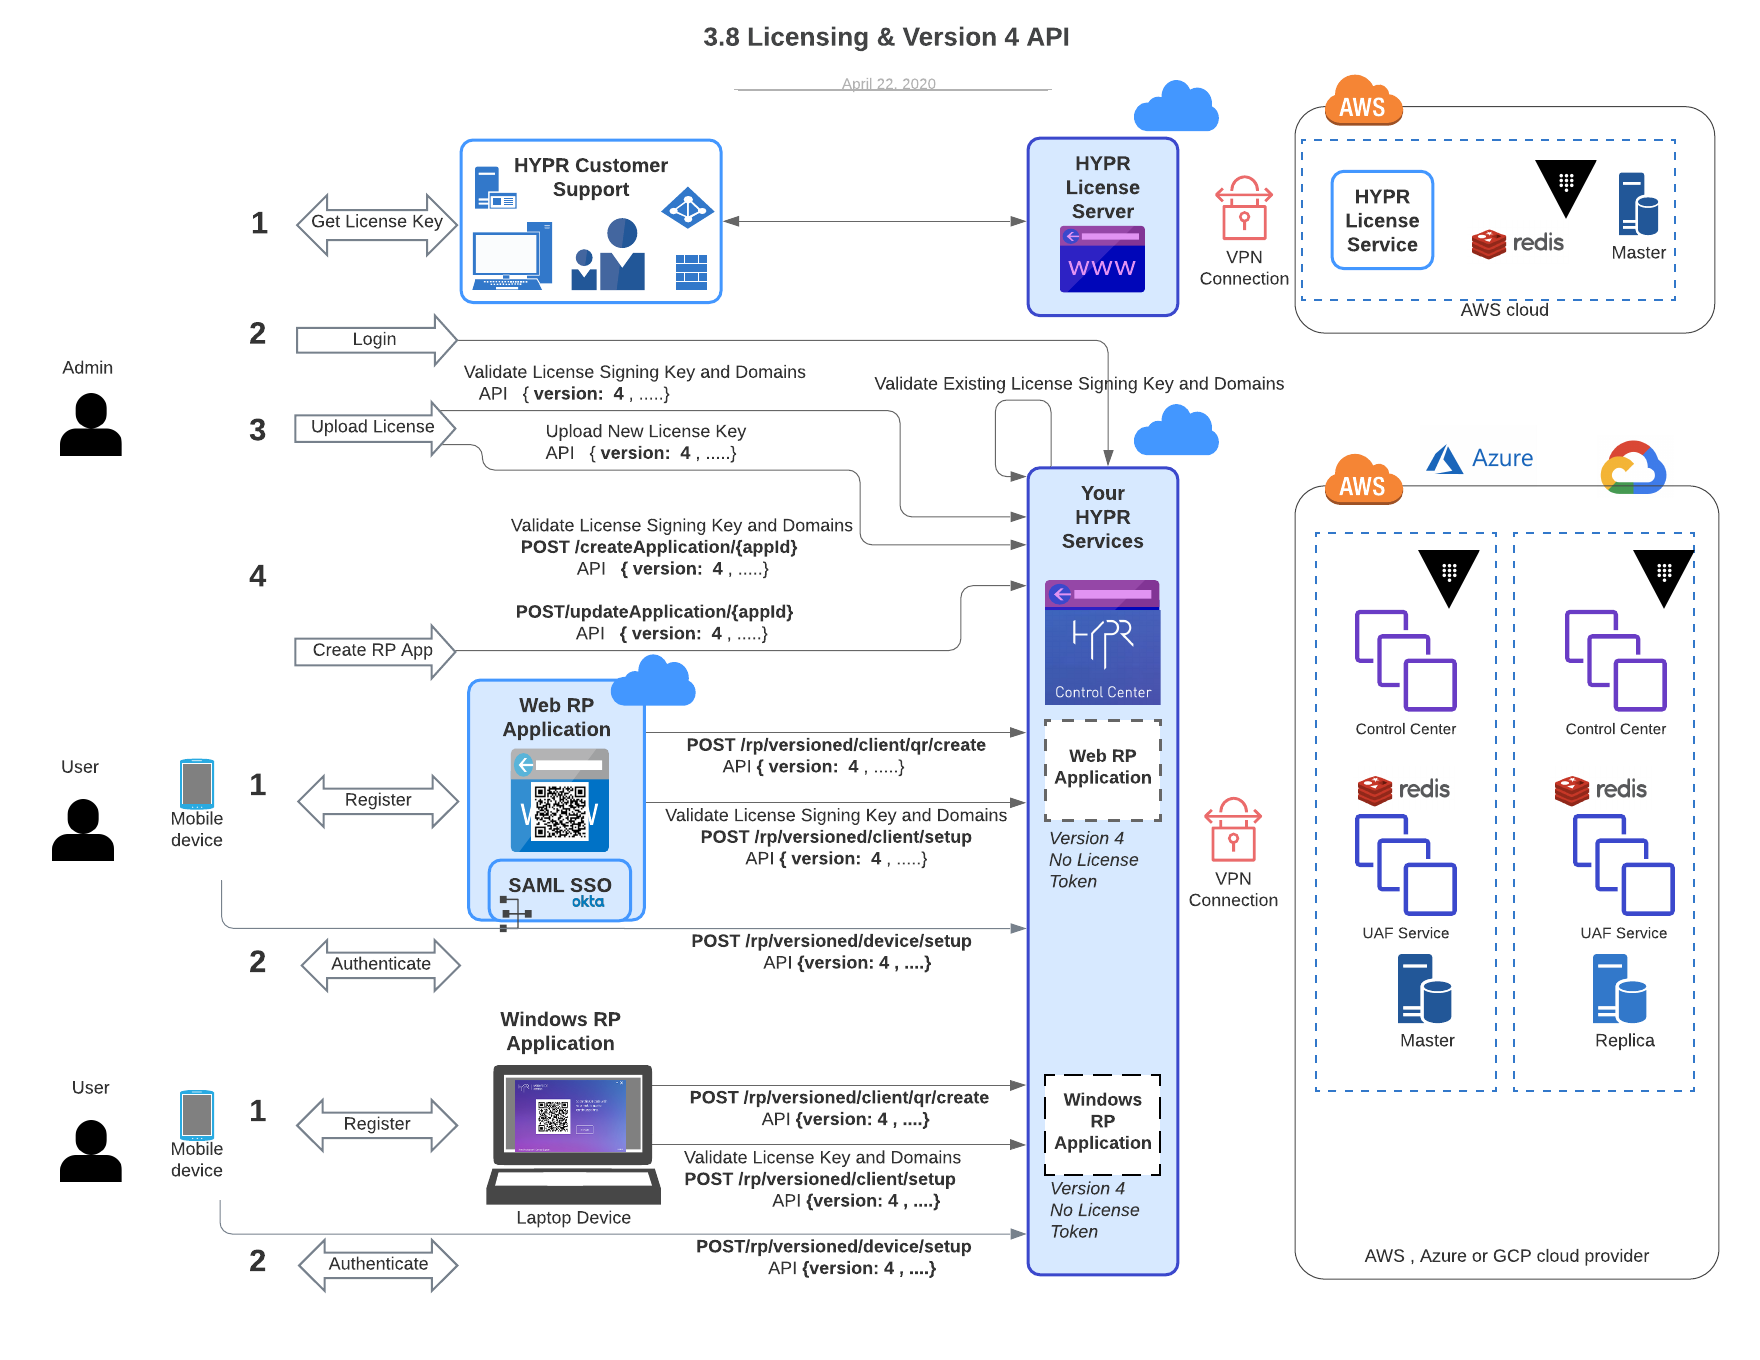 FIGURE 1:  User cases mapped to the version 4 API. The API's in bold are affected by the V4 API workflow.